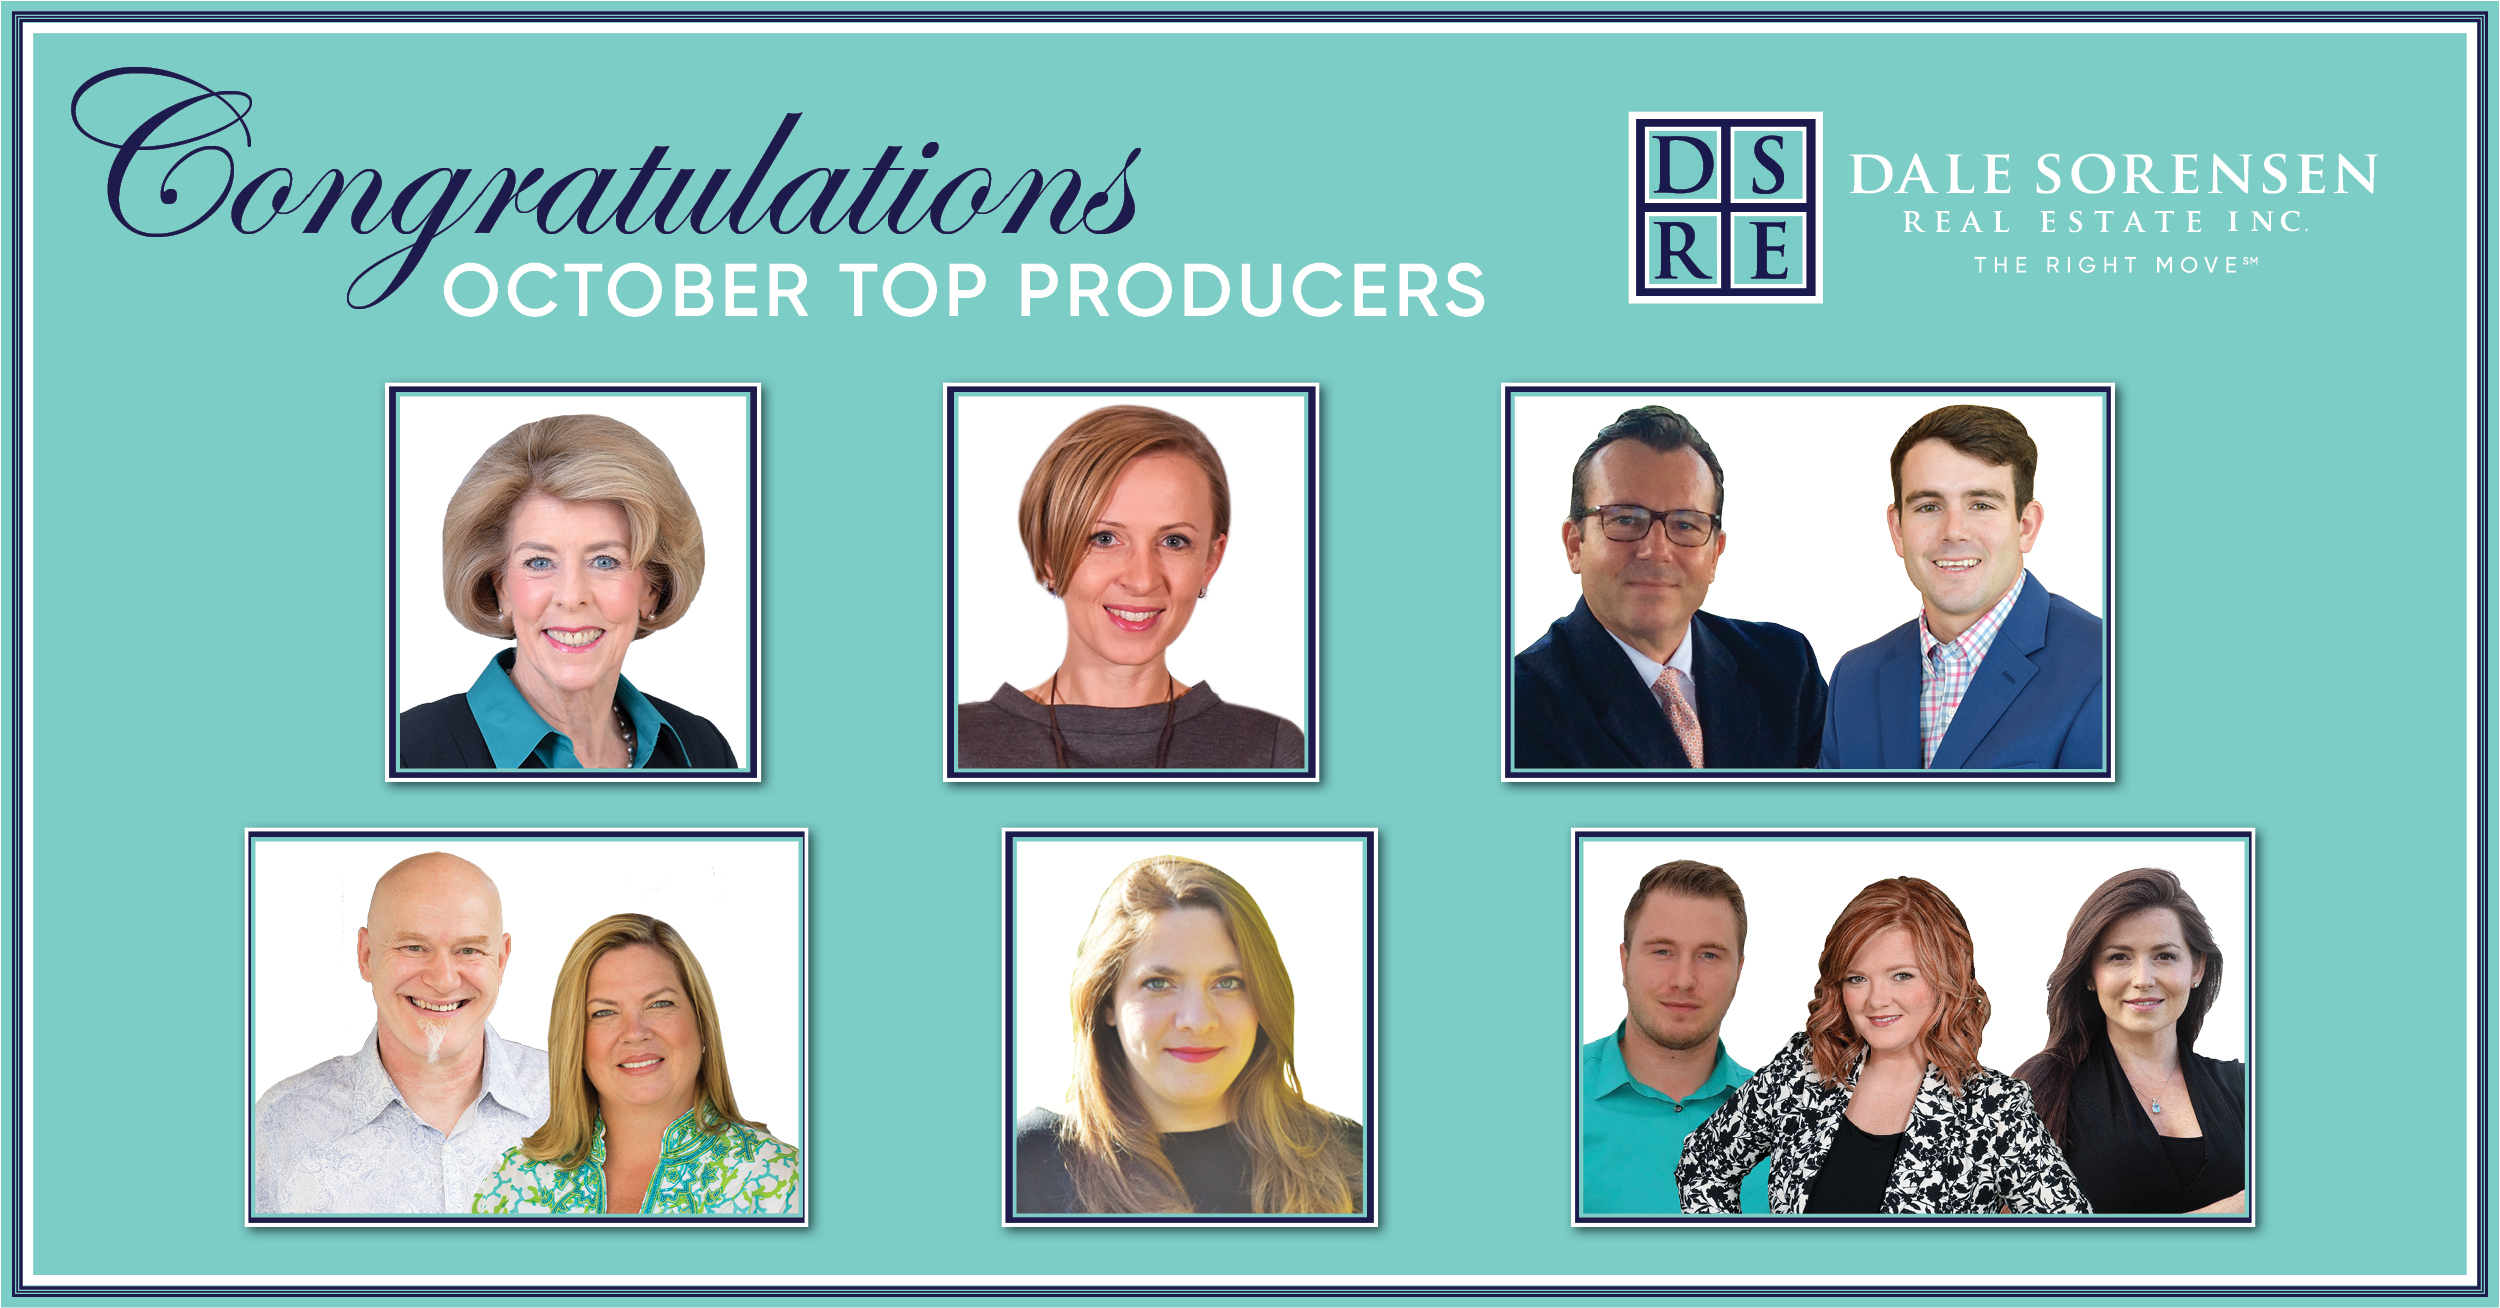 Congratulations October Top Producers | Dale Sorensen Real Estate THE RIGHT MOVE